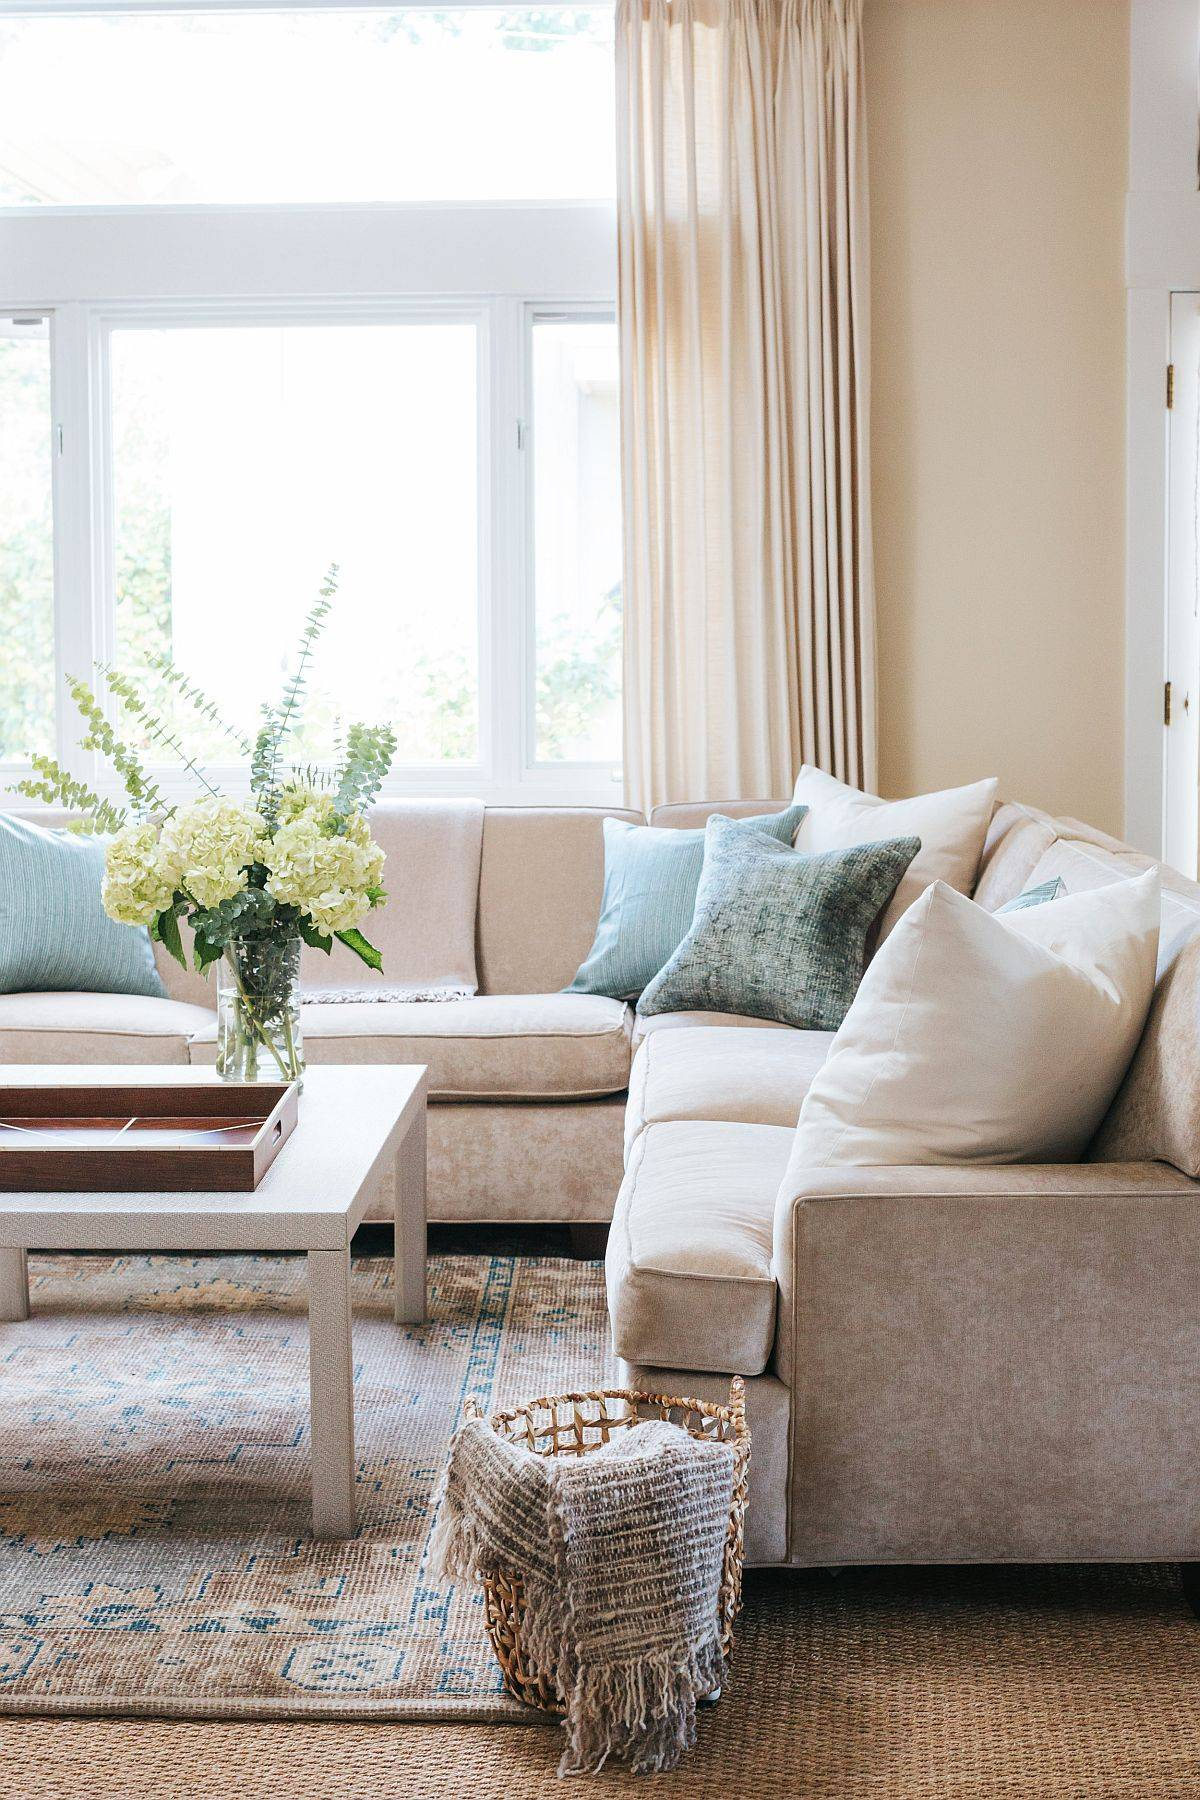 Color-palette-in-earthen-hues-with-natural-textures-all-around-is-perfect-for-the-beach-style-living-space-76126